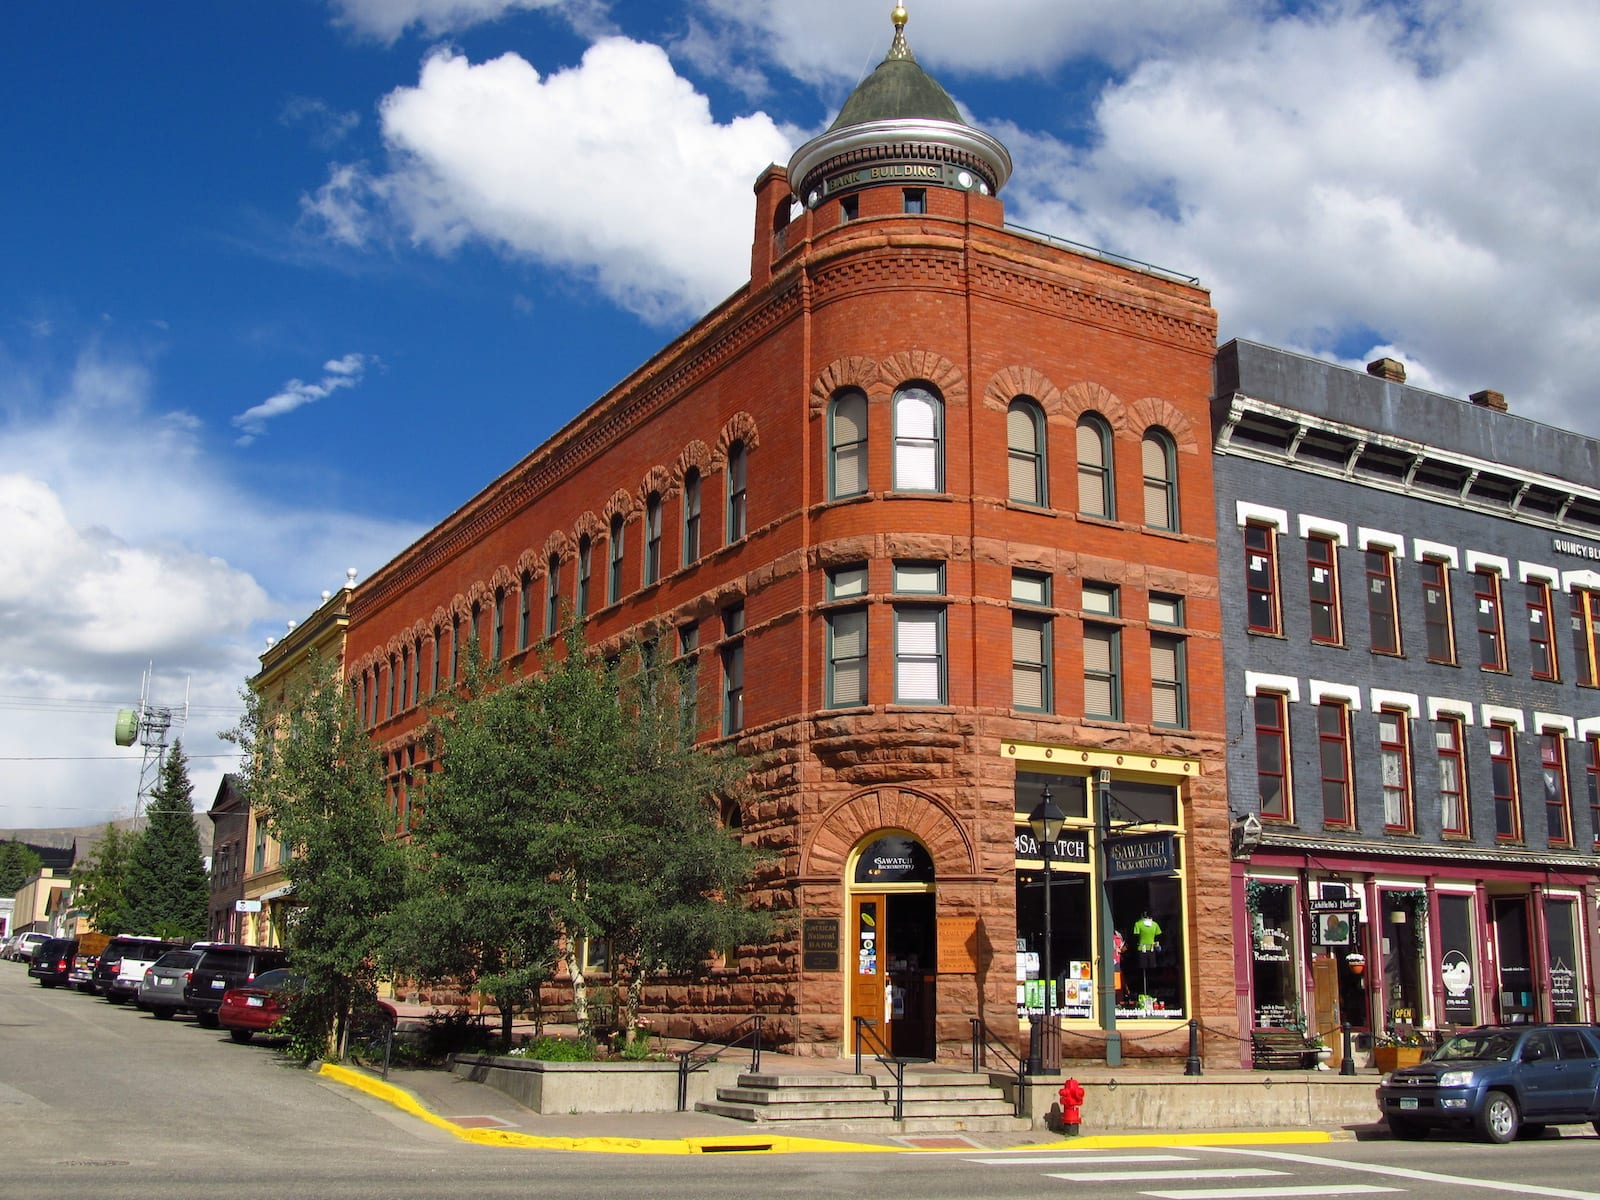 American National Bank Building at Leadville in Colorado